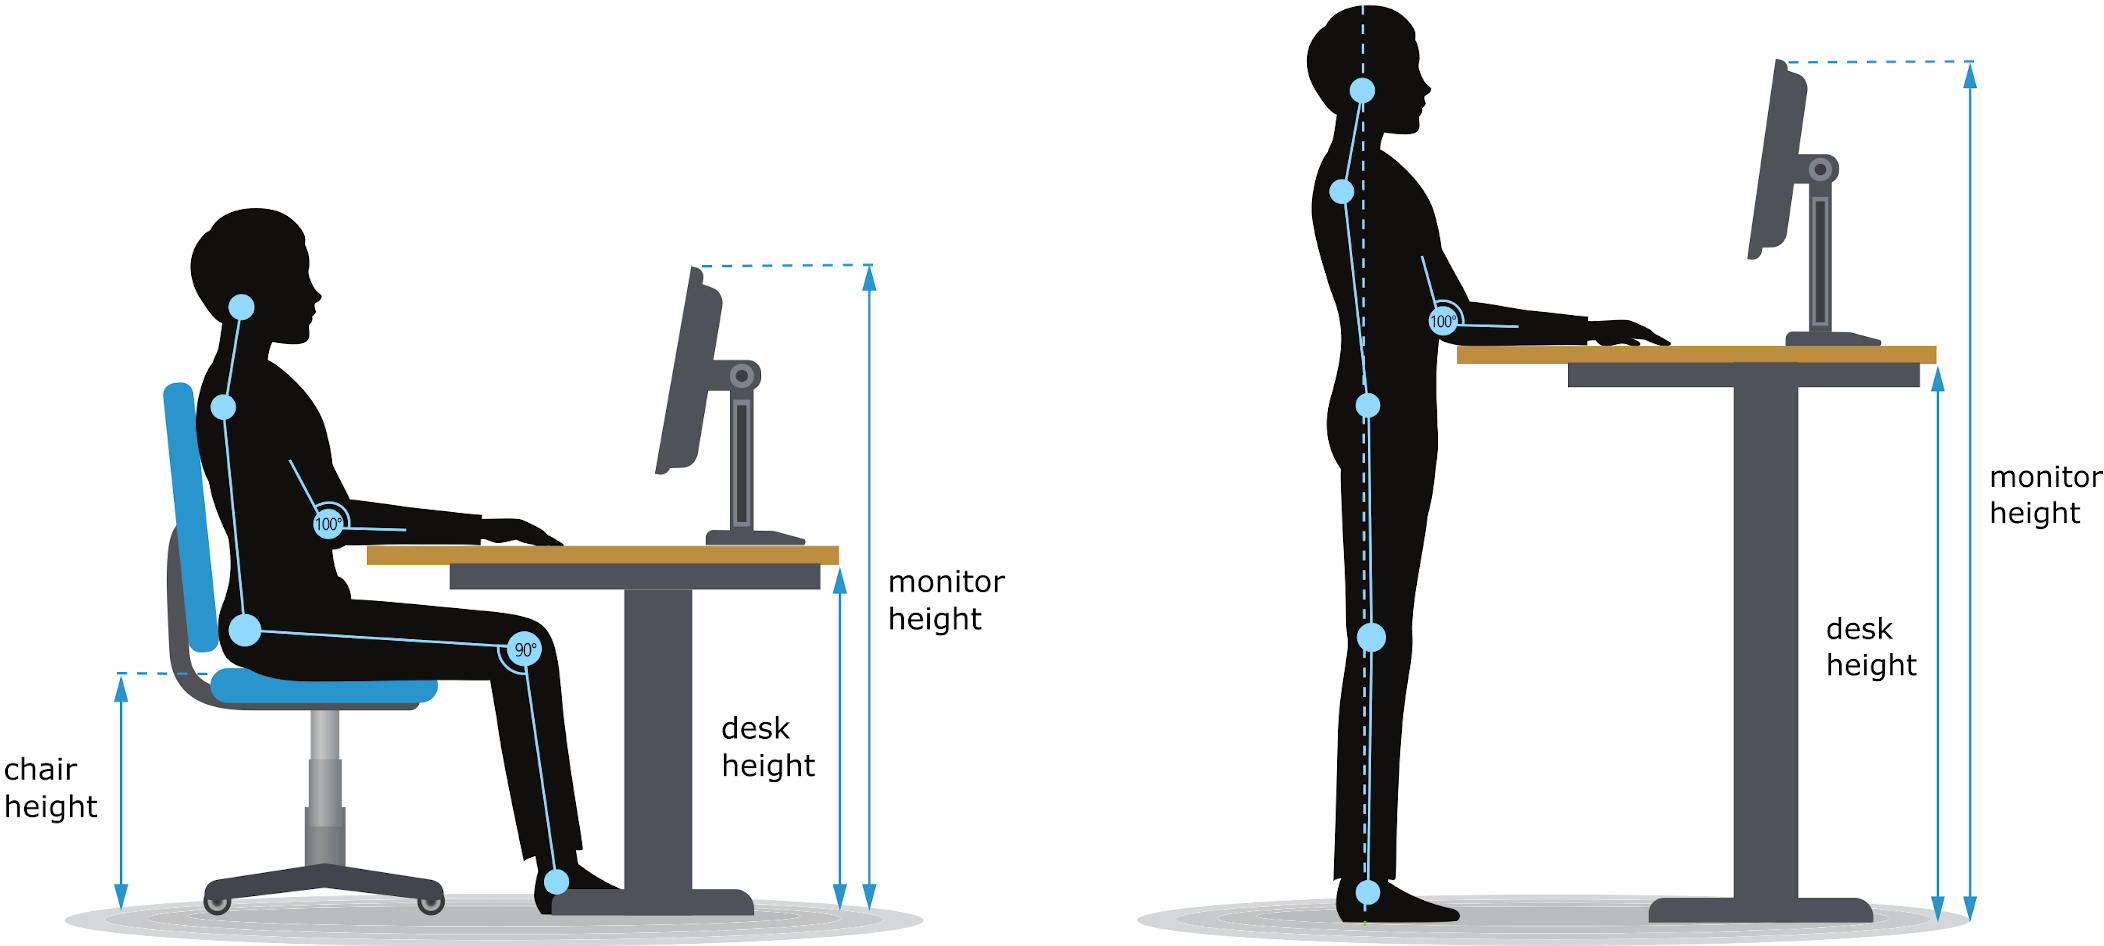 Diagram showing the key measurements to find the ergonomic desk height